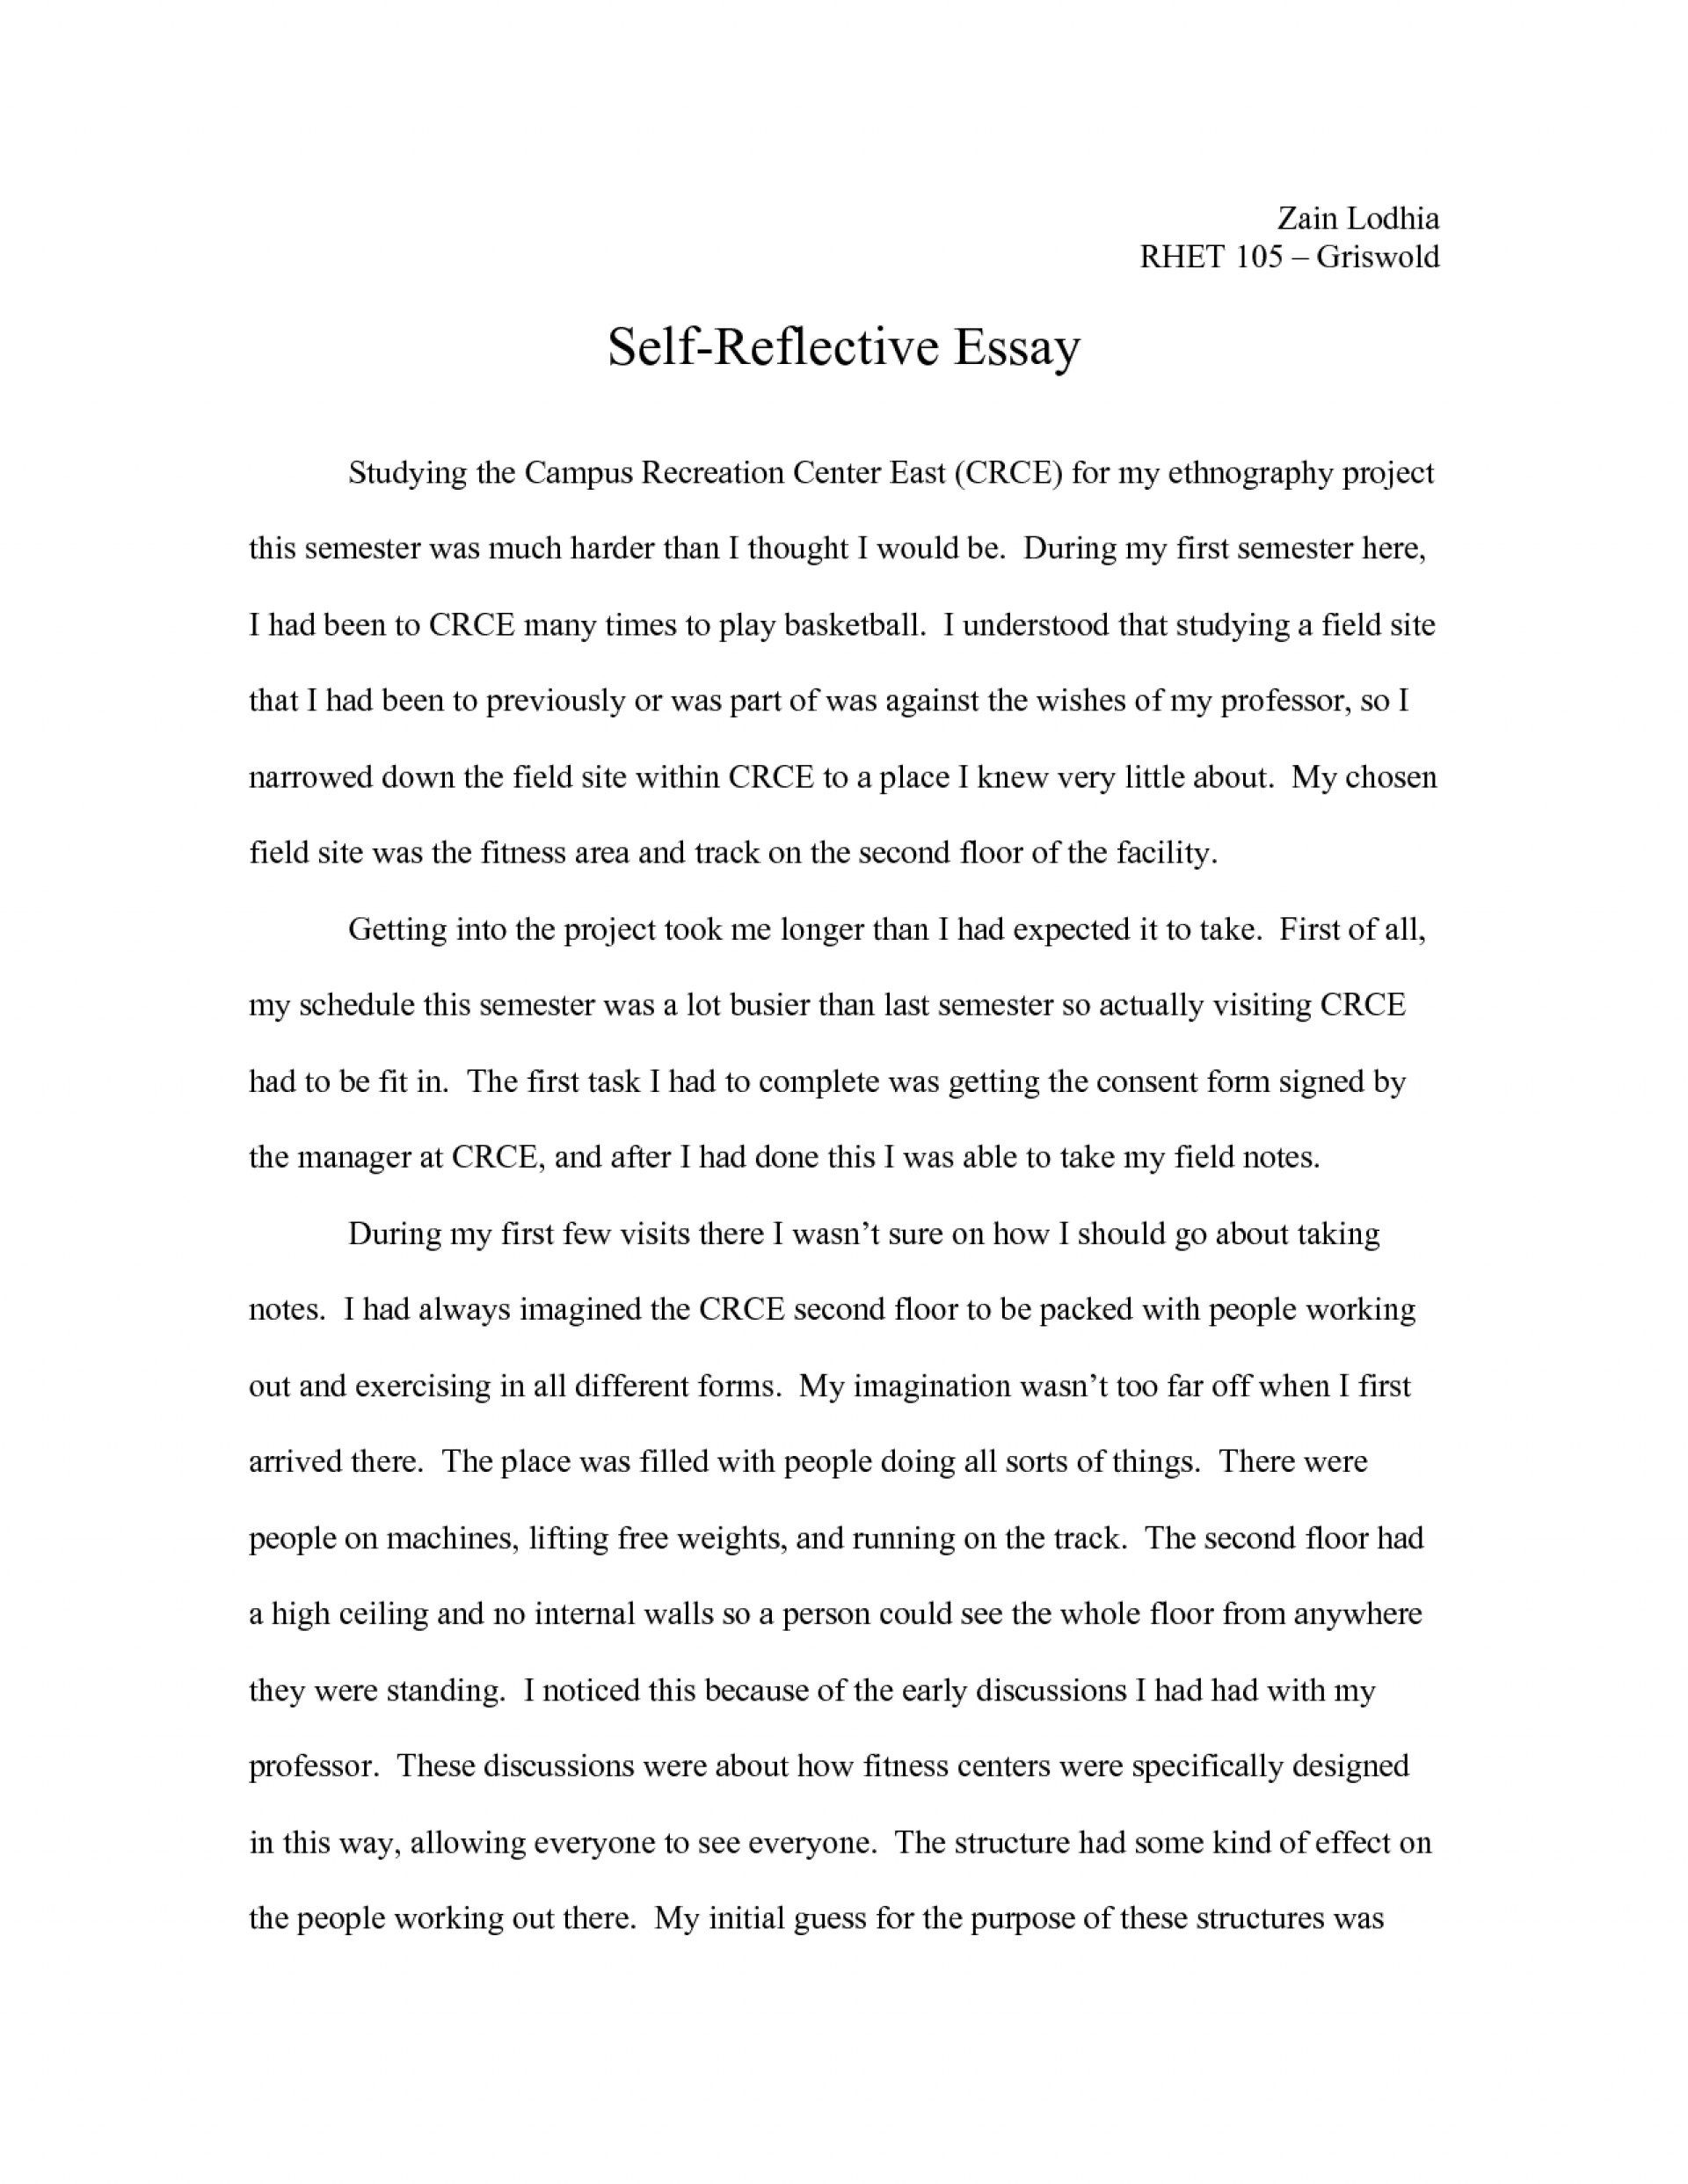 028 How To Write And Essay Qal0pwnf46 Unique An Outline 6th Grade Conclusion In Mla Format 1920